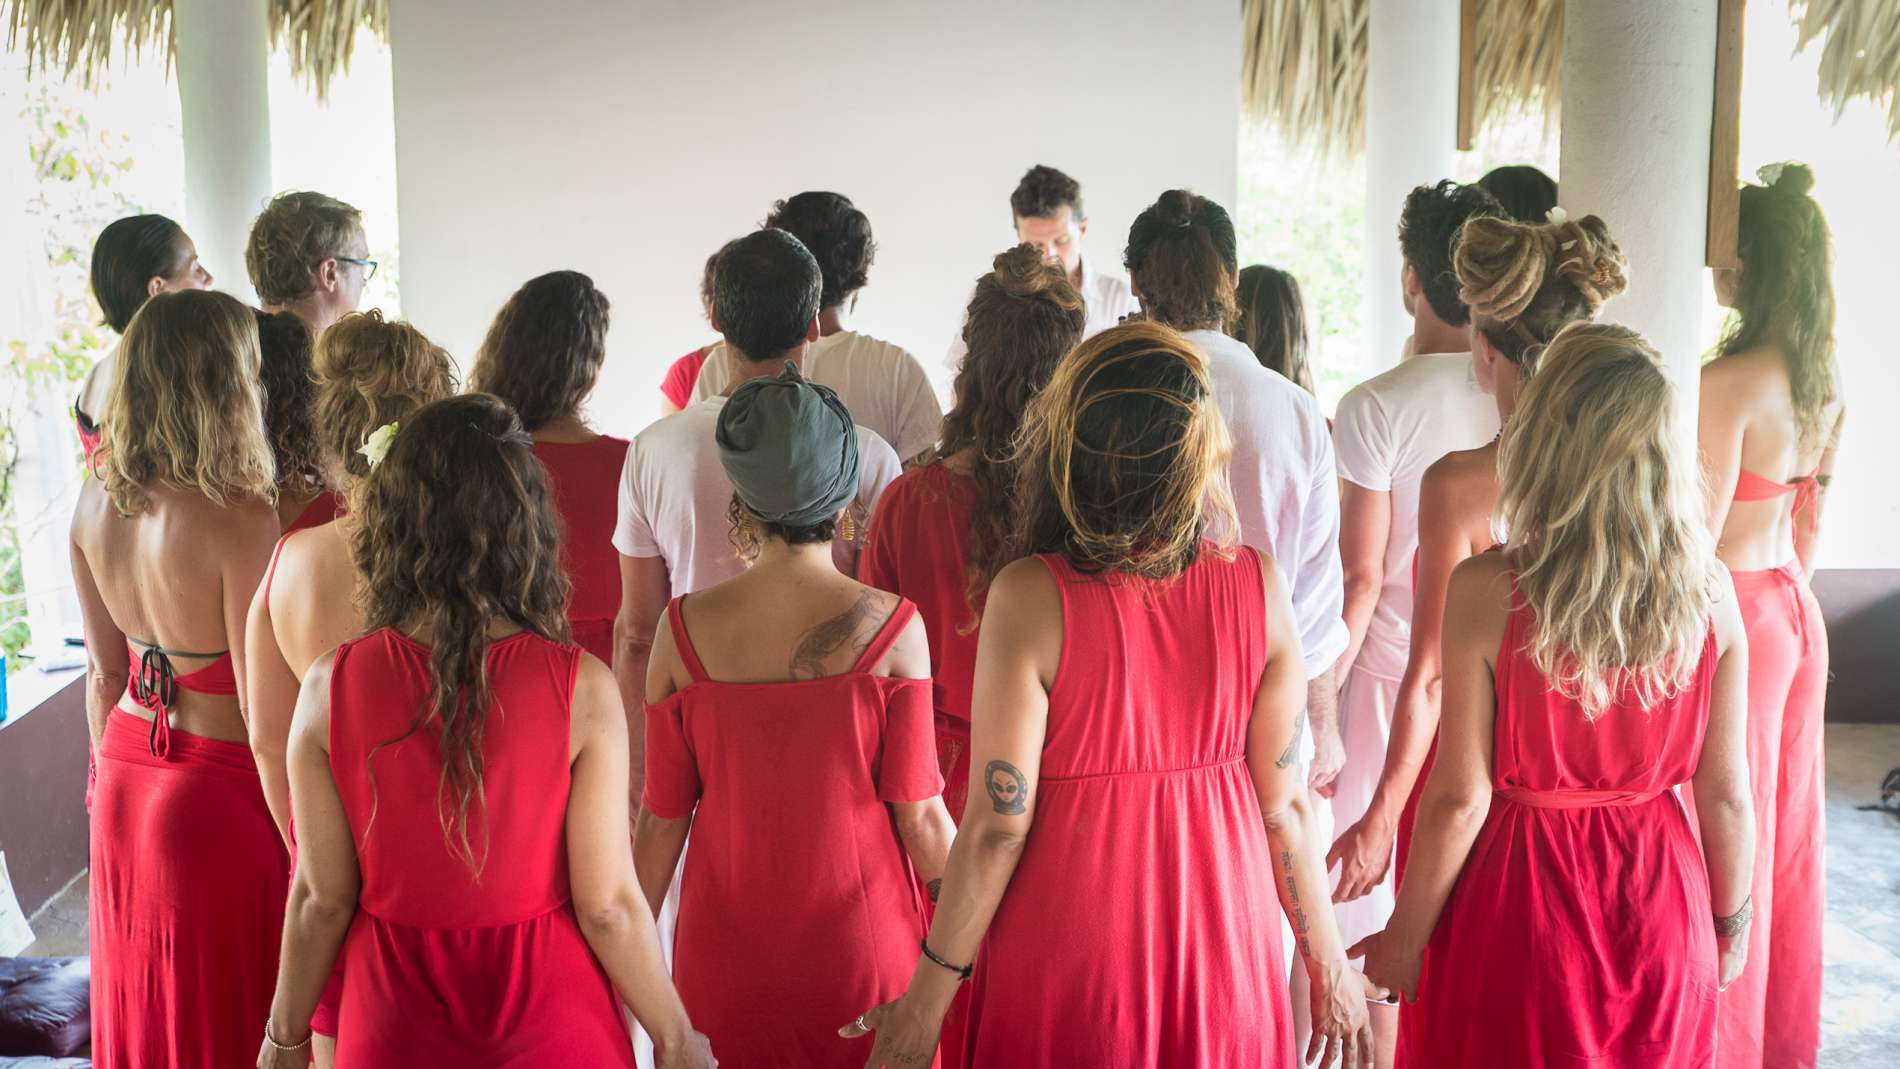 yoga teacher training group men and women together during a ritual